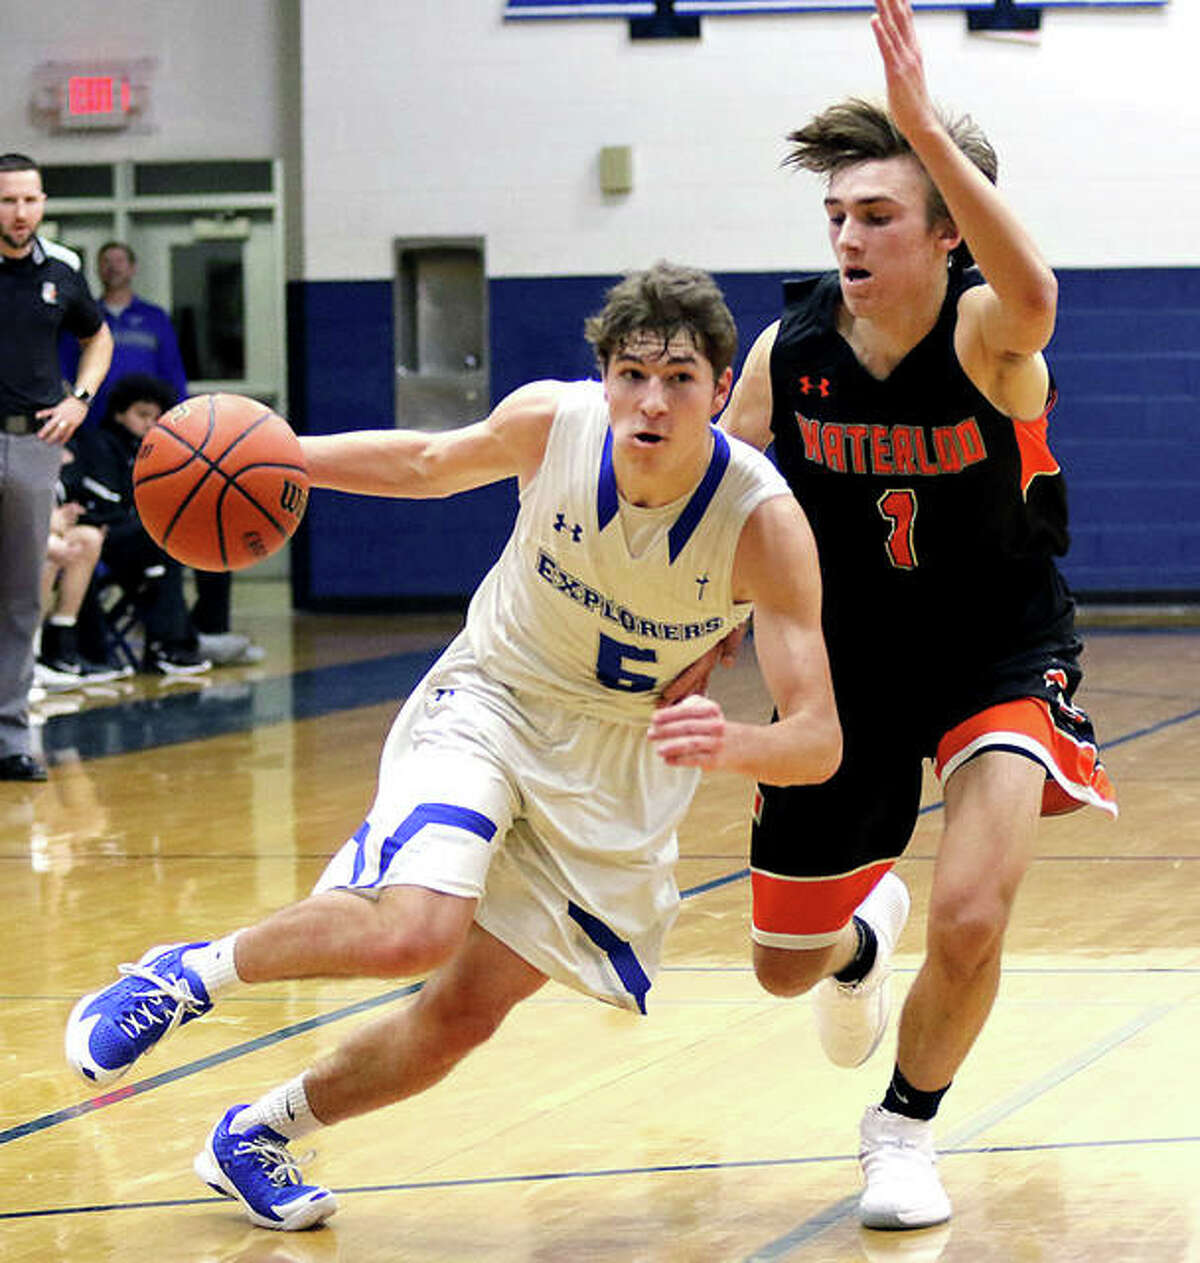 Marquette Catholic's Chris Hartrich (left) drives past Waterloo's Tre Wahlig and converts a three-point play during the second half Thursday night in the Sparta Mid Winter Classic at Dwight Fulton Gym in Sparta.